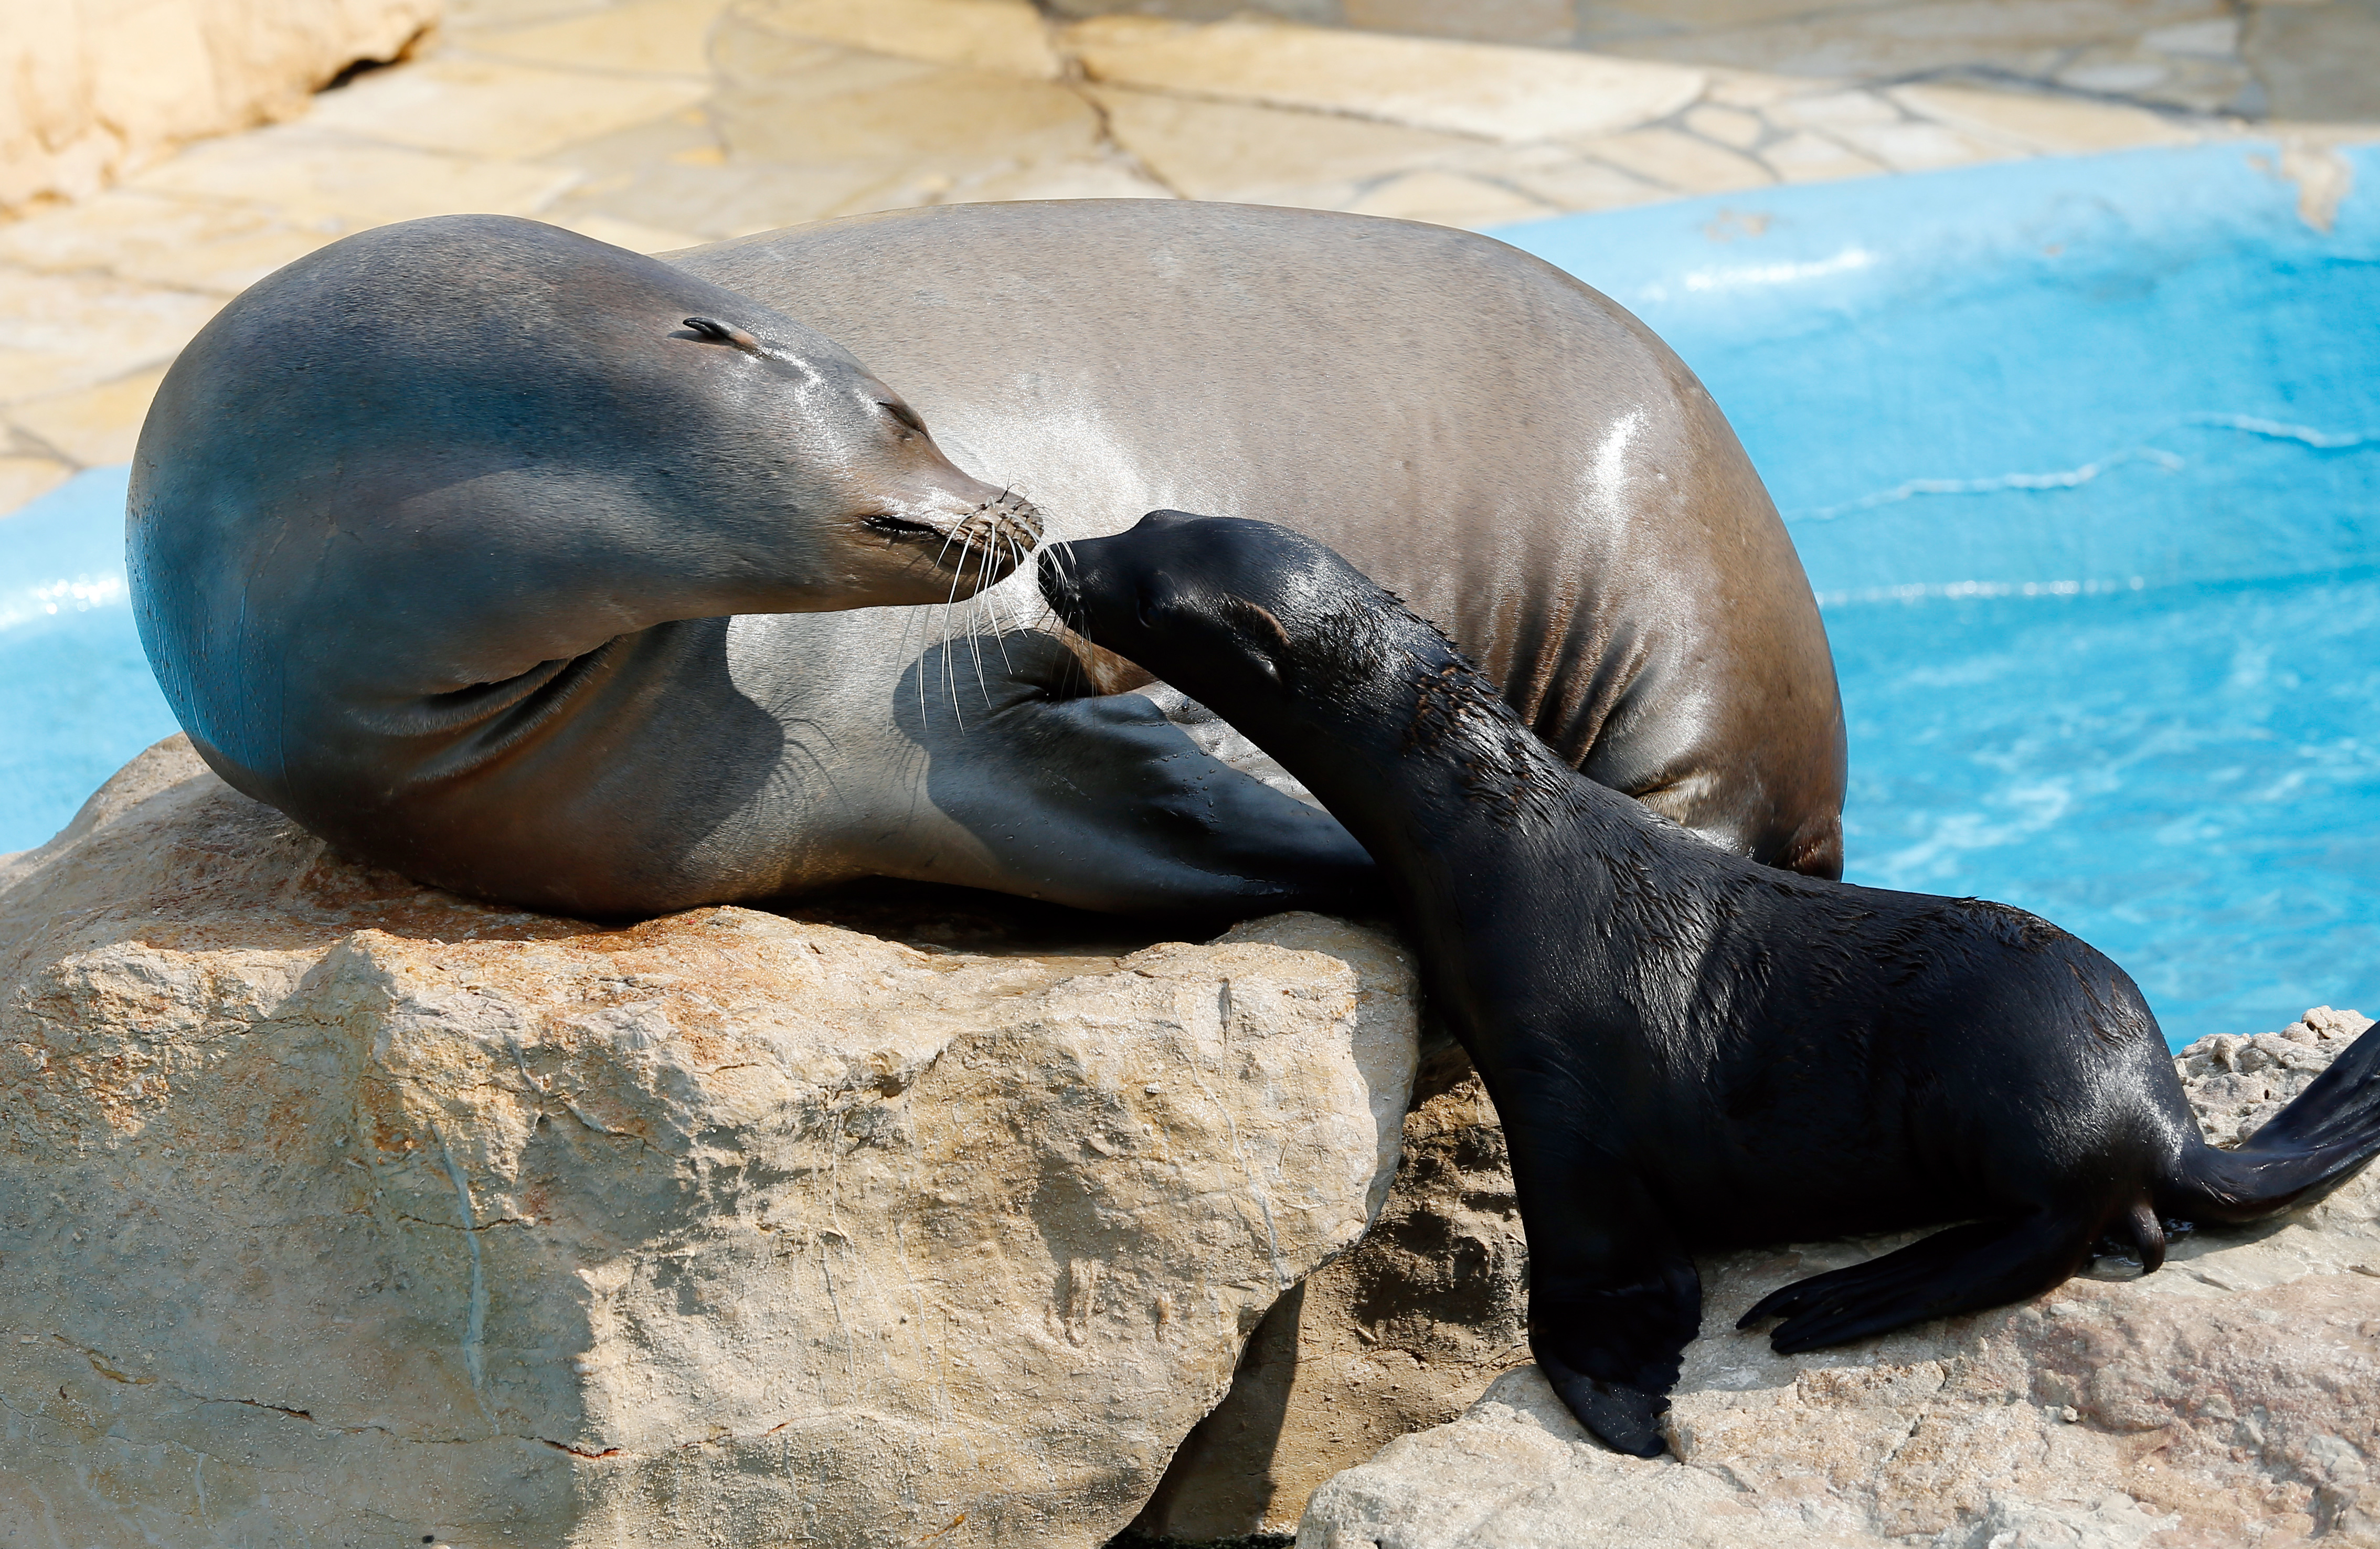 A newborn sea lion and its mother are seen at Marineland in Nice, France on July 17, 2013.